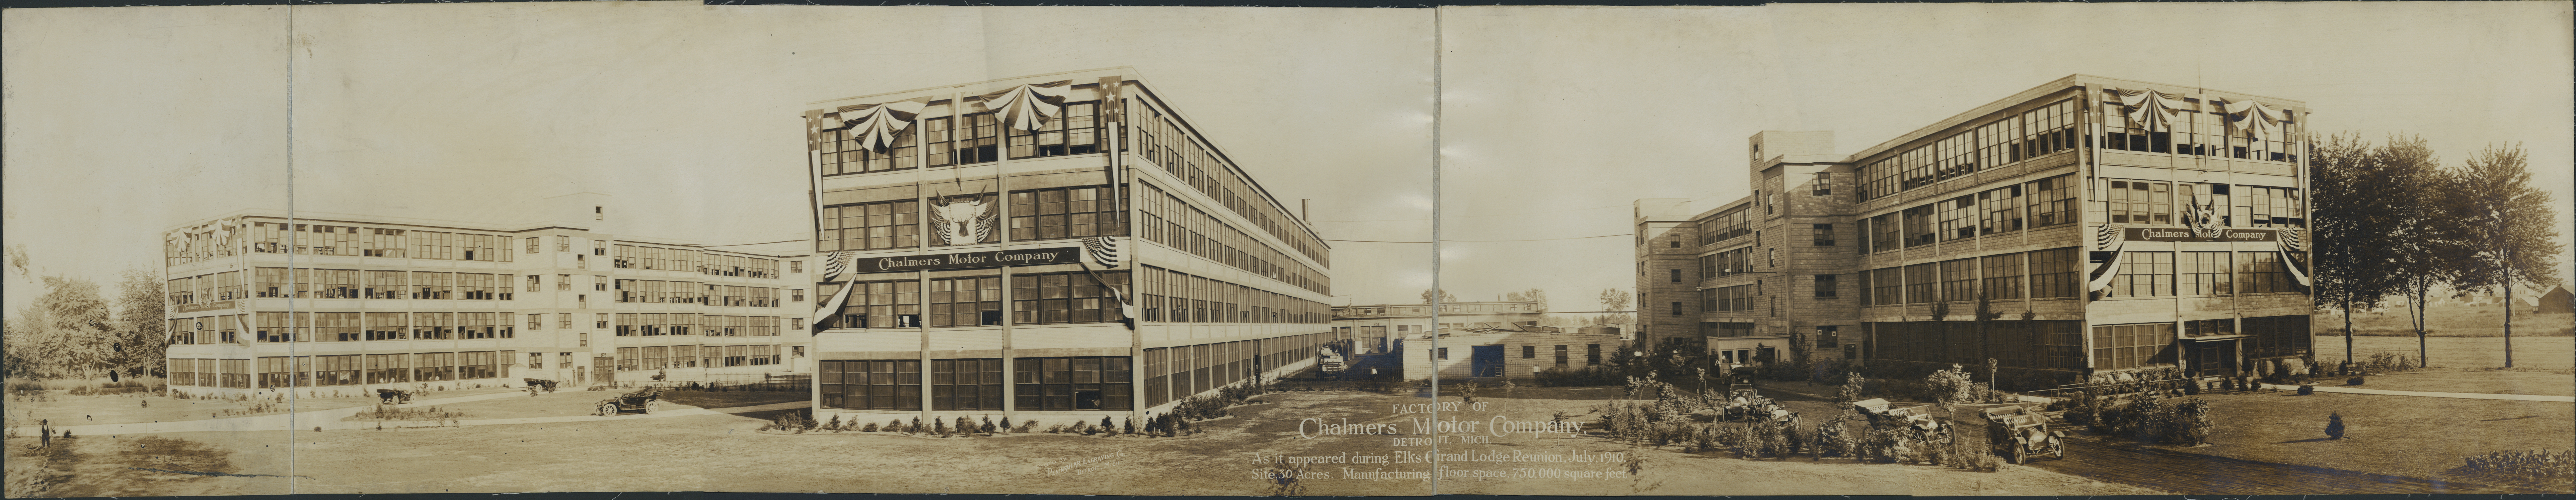 Chalmers Motor Company factory